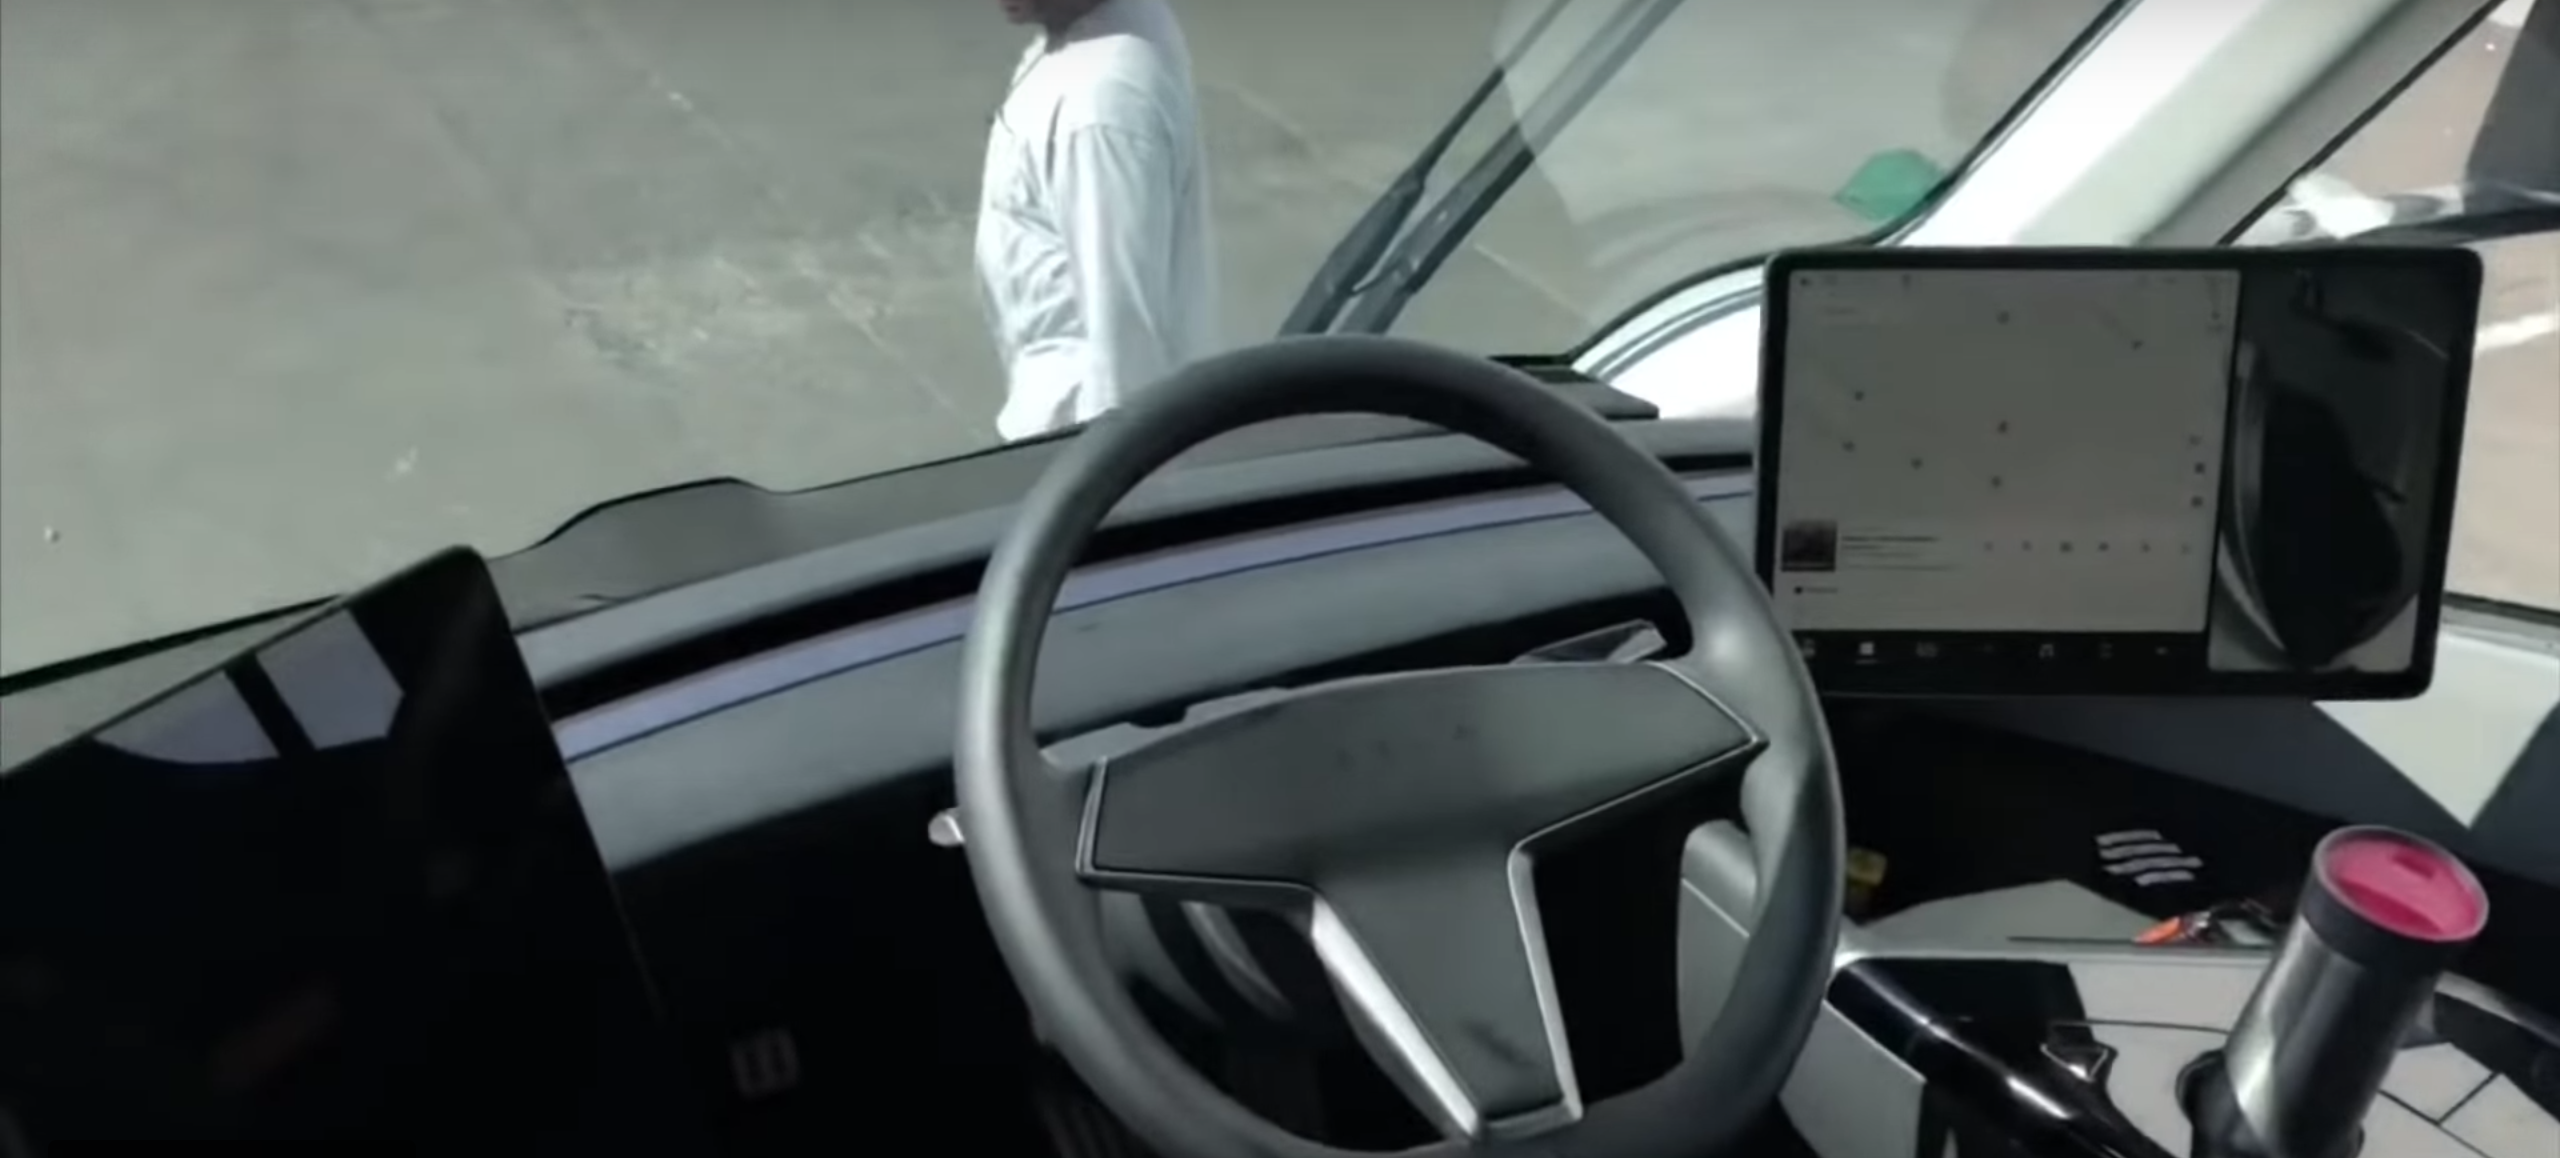 Putting The Monitors Off To Side Keeps Sightline Out Front Of Vehicle As Clear Possible While Giving Tesla Design Flexibility With